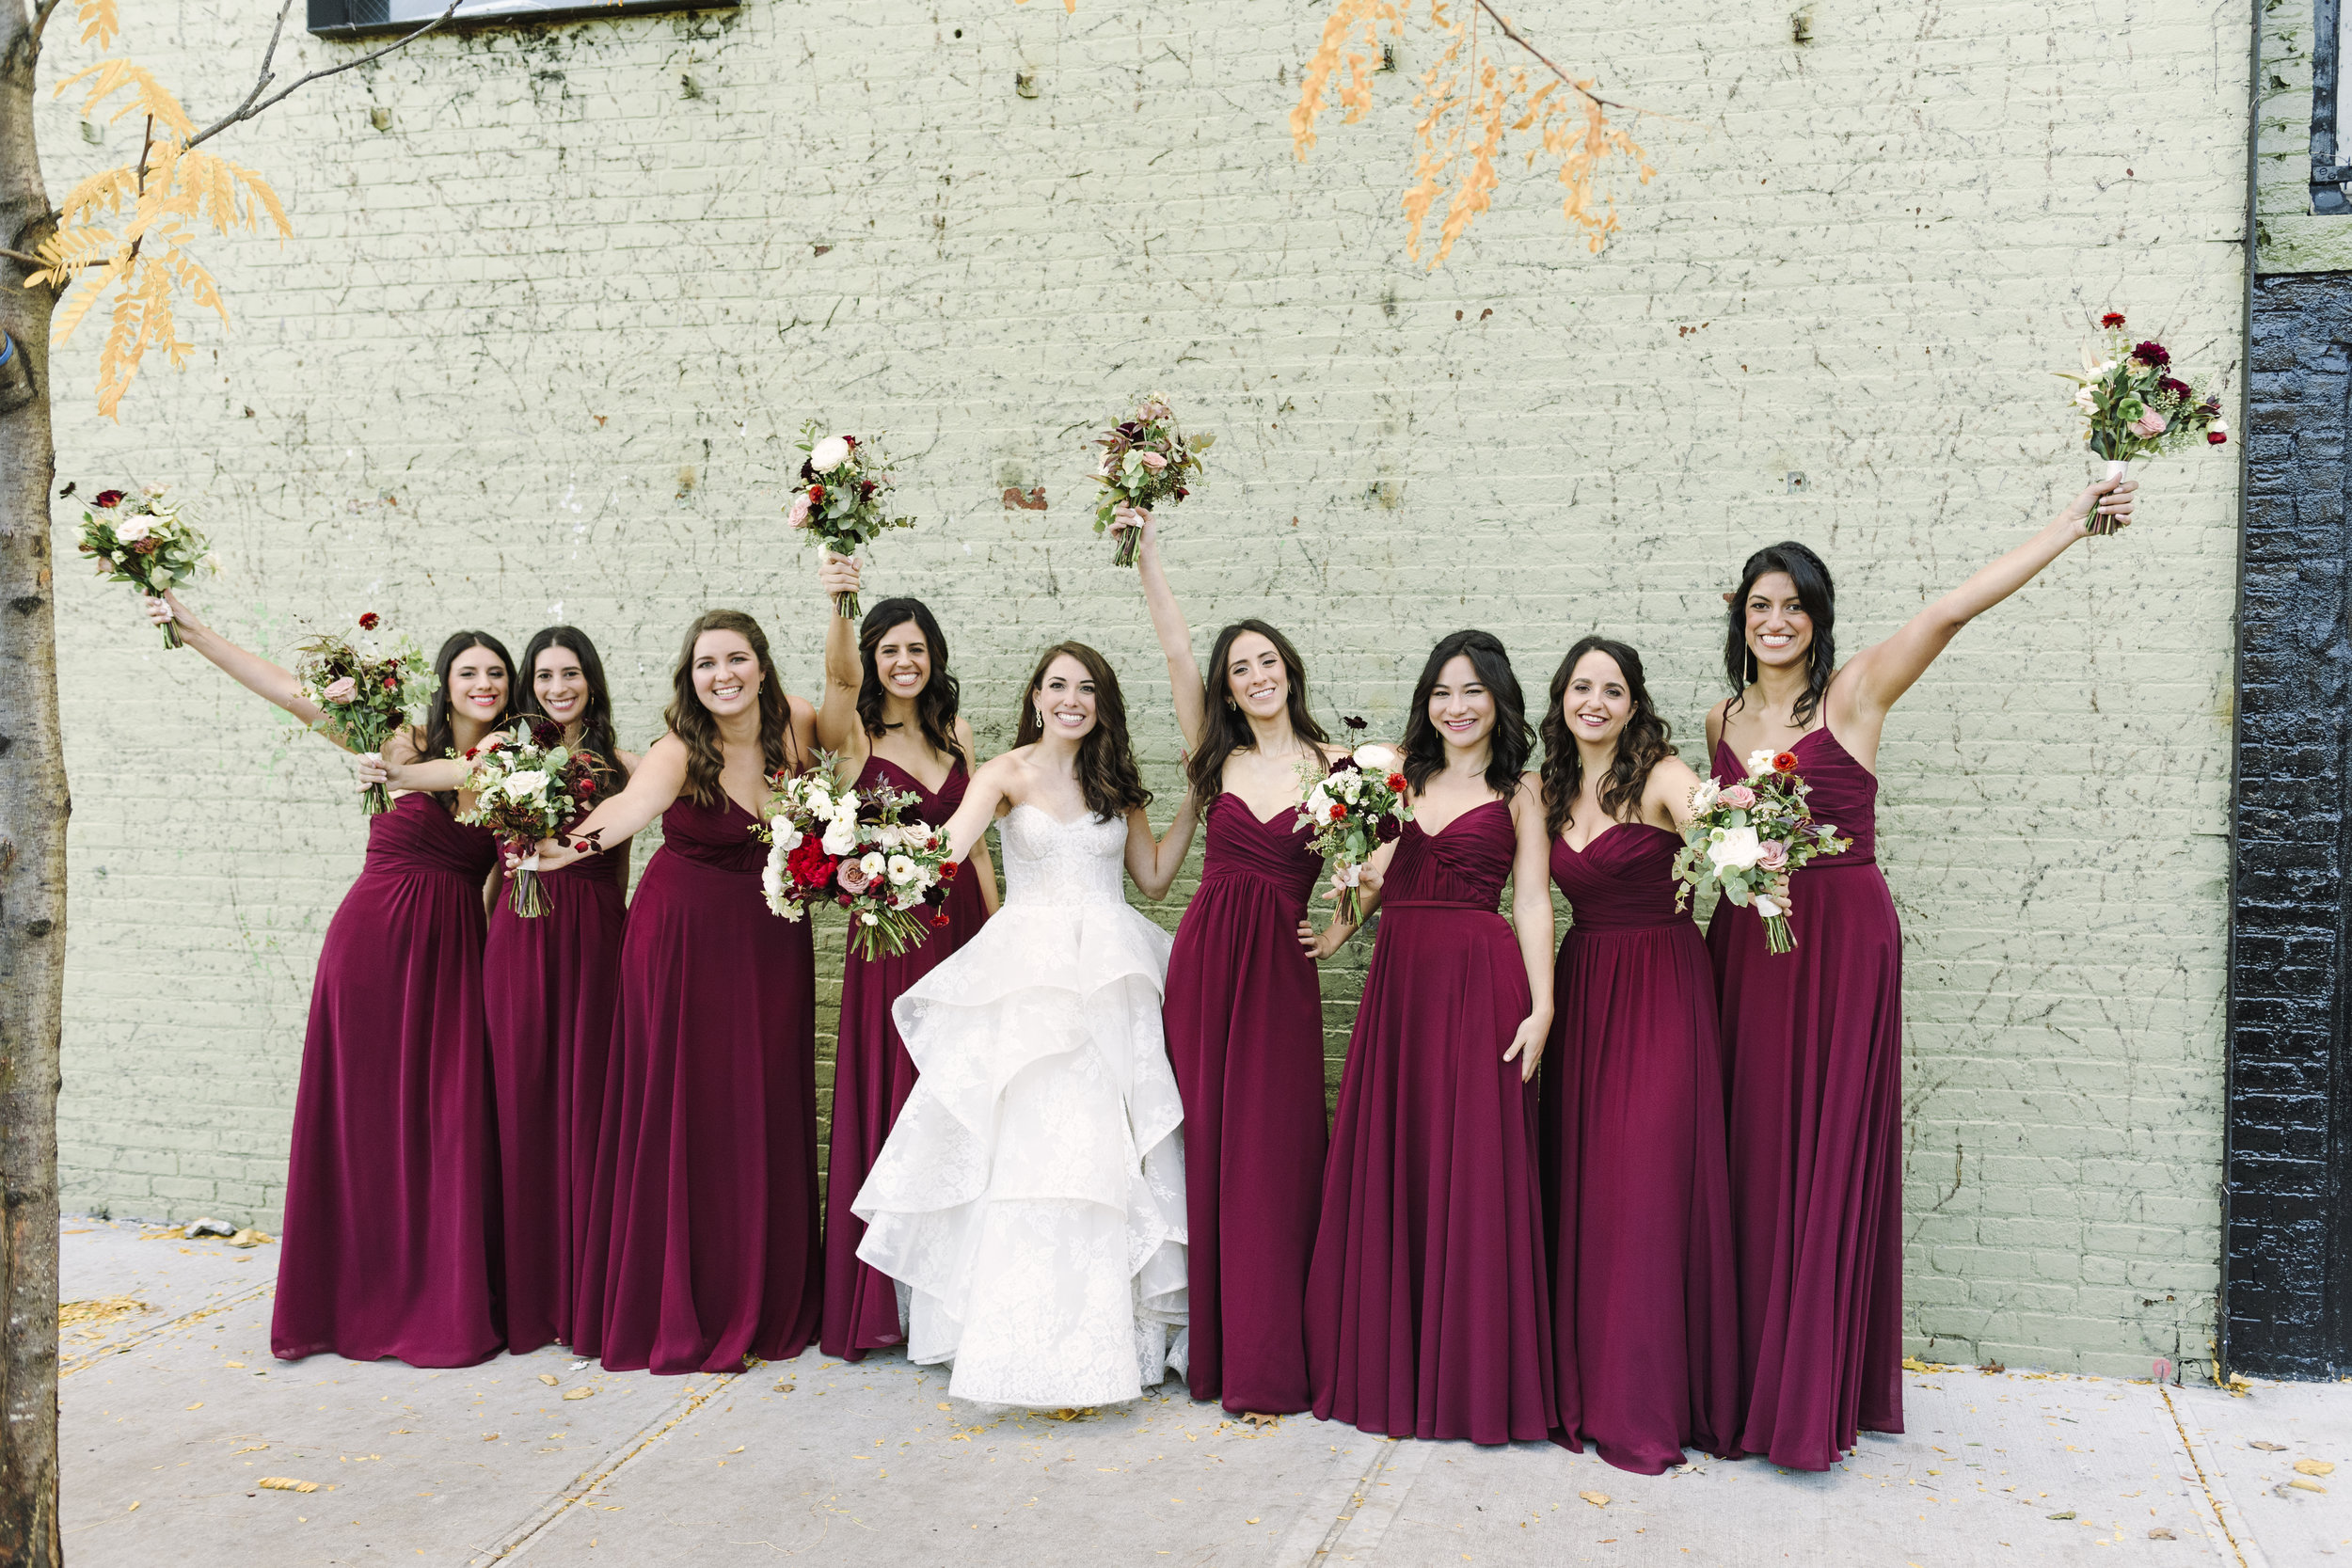 wedding wire - 6 Bridesmaid Proposal Ideas to Help You Pop the Question